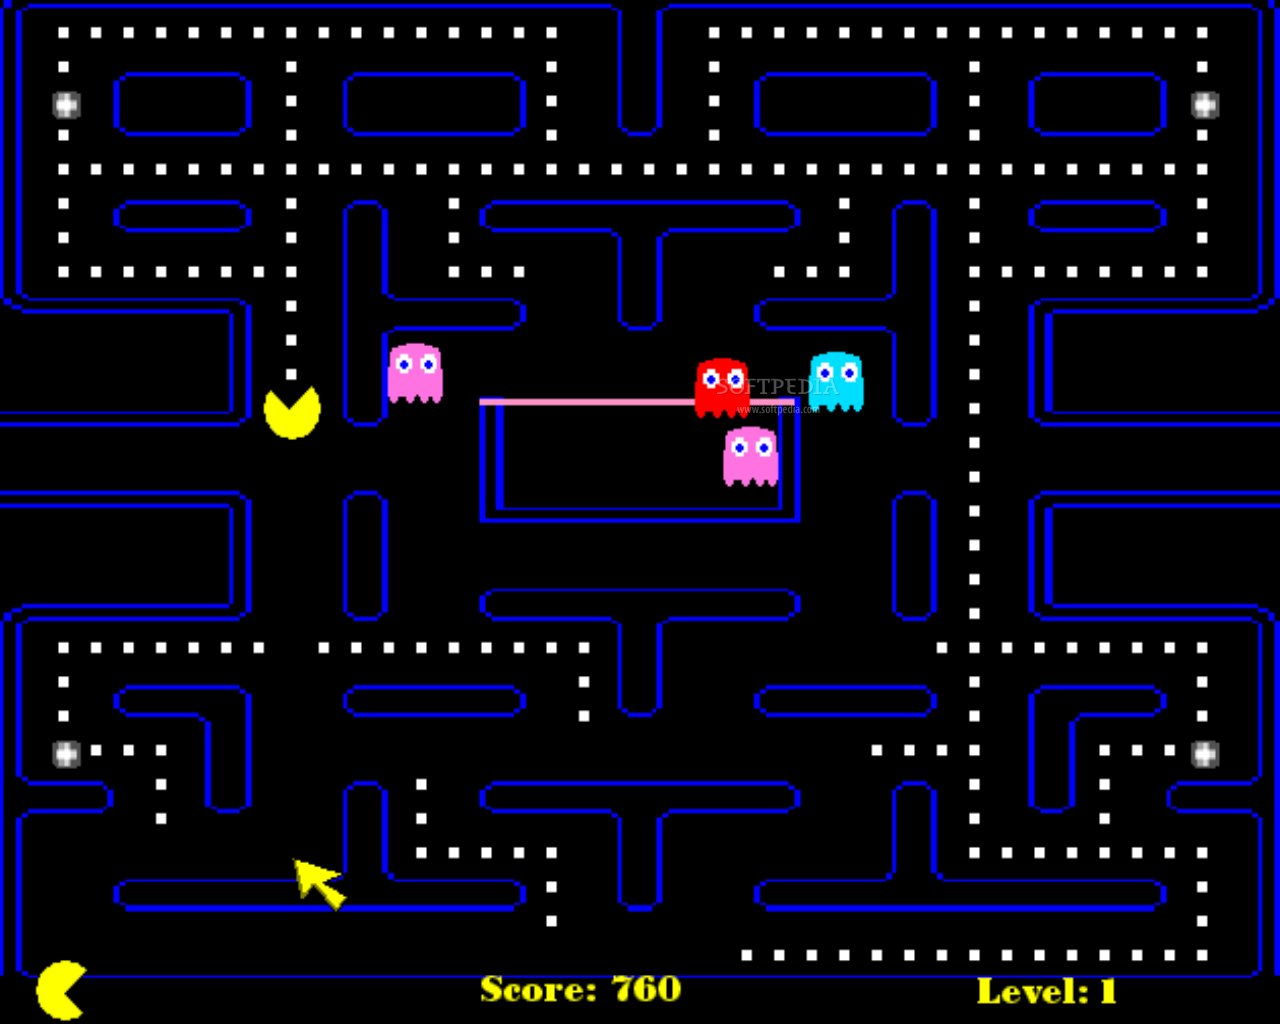 http://i1-games.softpedia-static.com/screenshots/Pac-Man-Deluxe_1.jpg